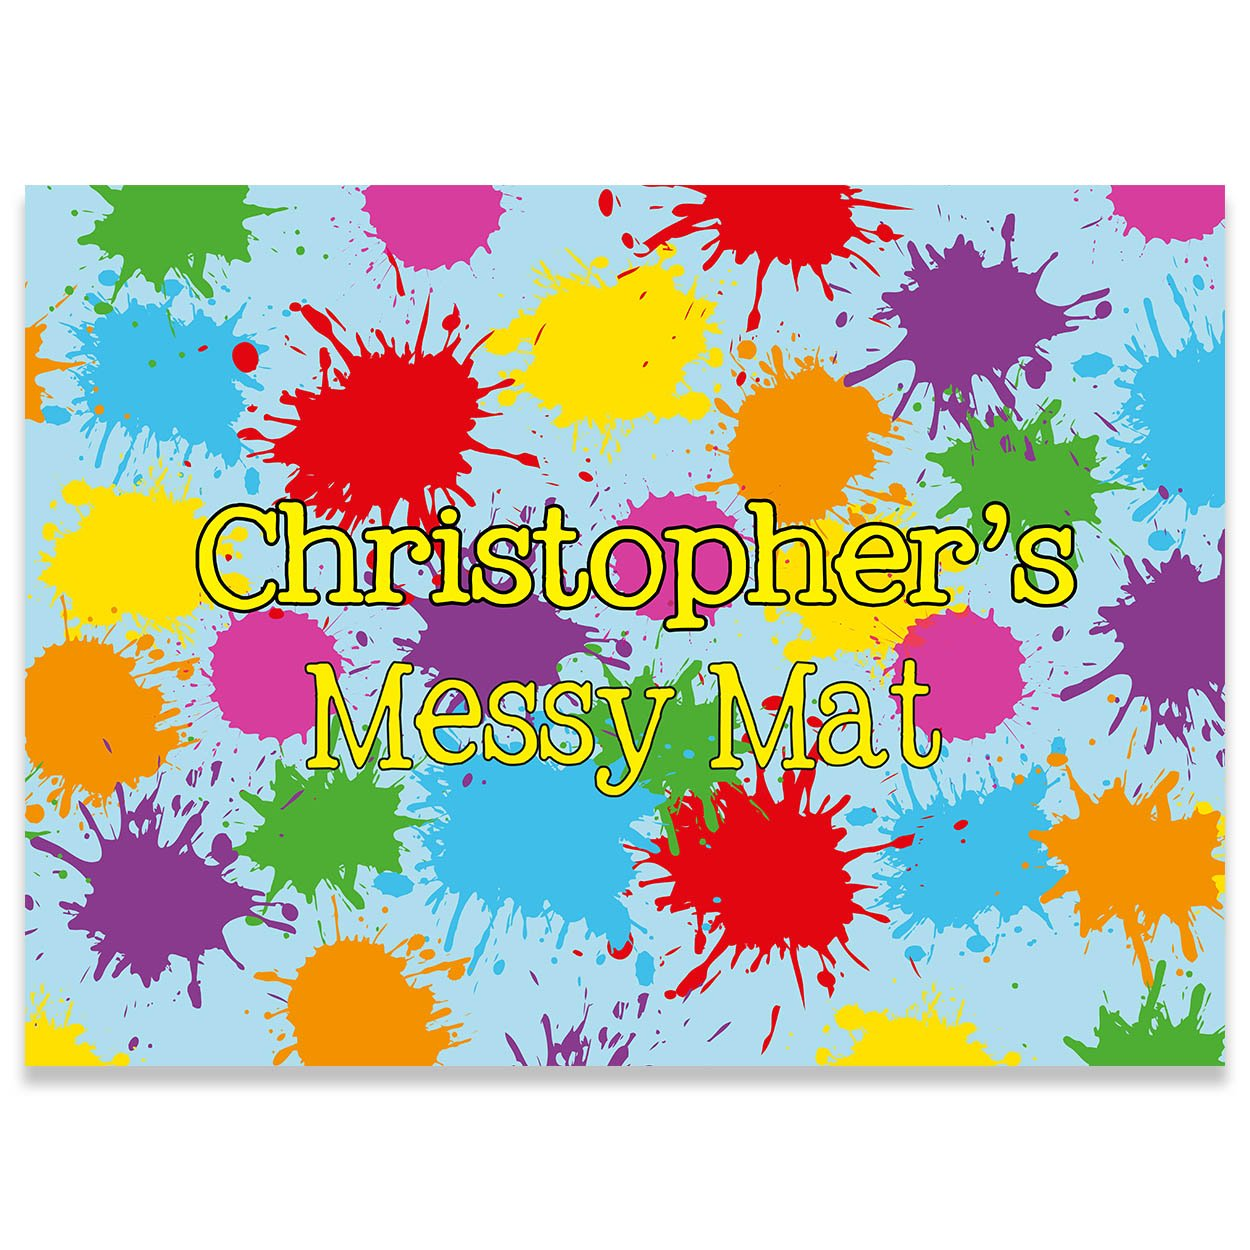 Paper Themes Playdoh Mat Kids personalised Messy Mat Paint sheet Playdough mat Arts and crafts splash mat - Messy Colours Collisons